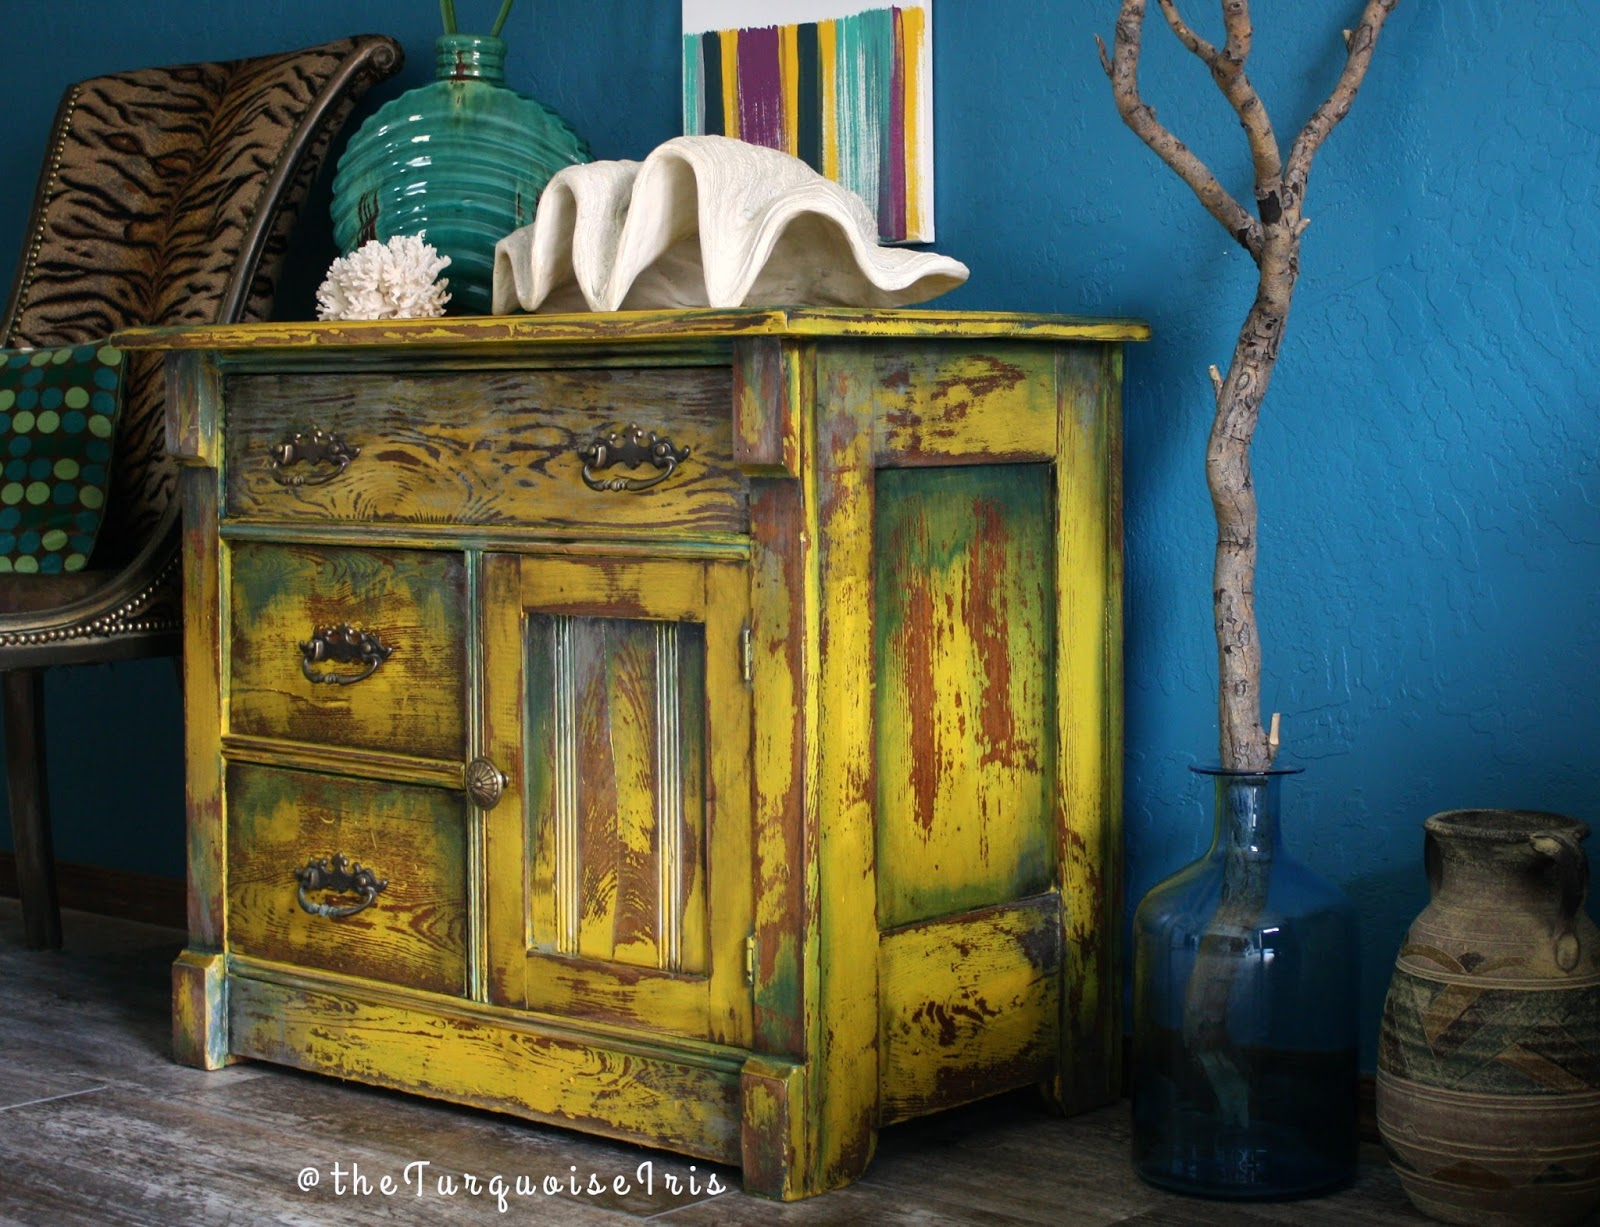 The Turquoise Iris Furniture Amp Art May 2016